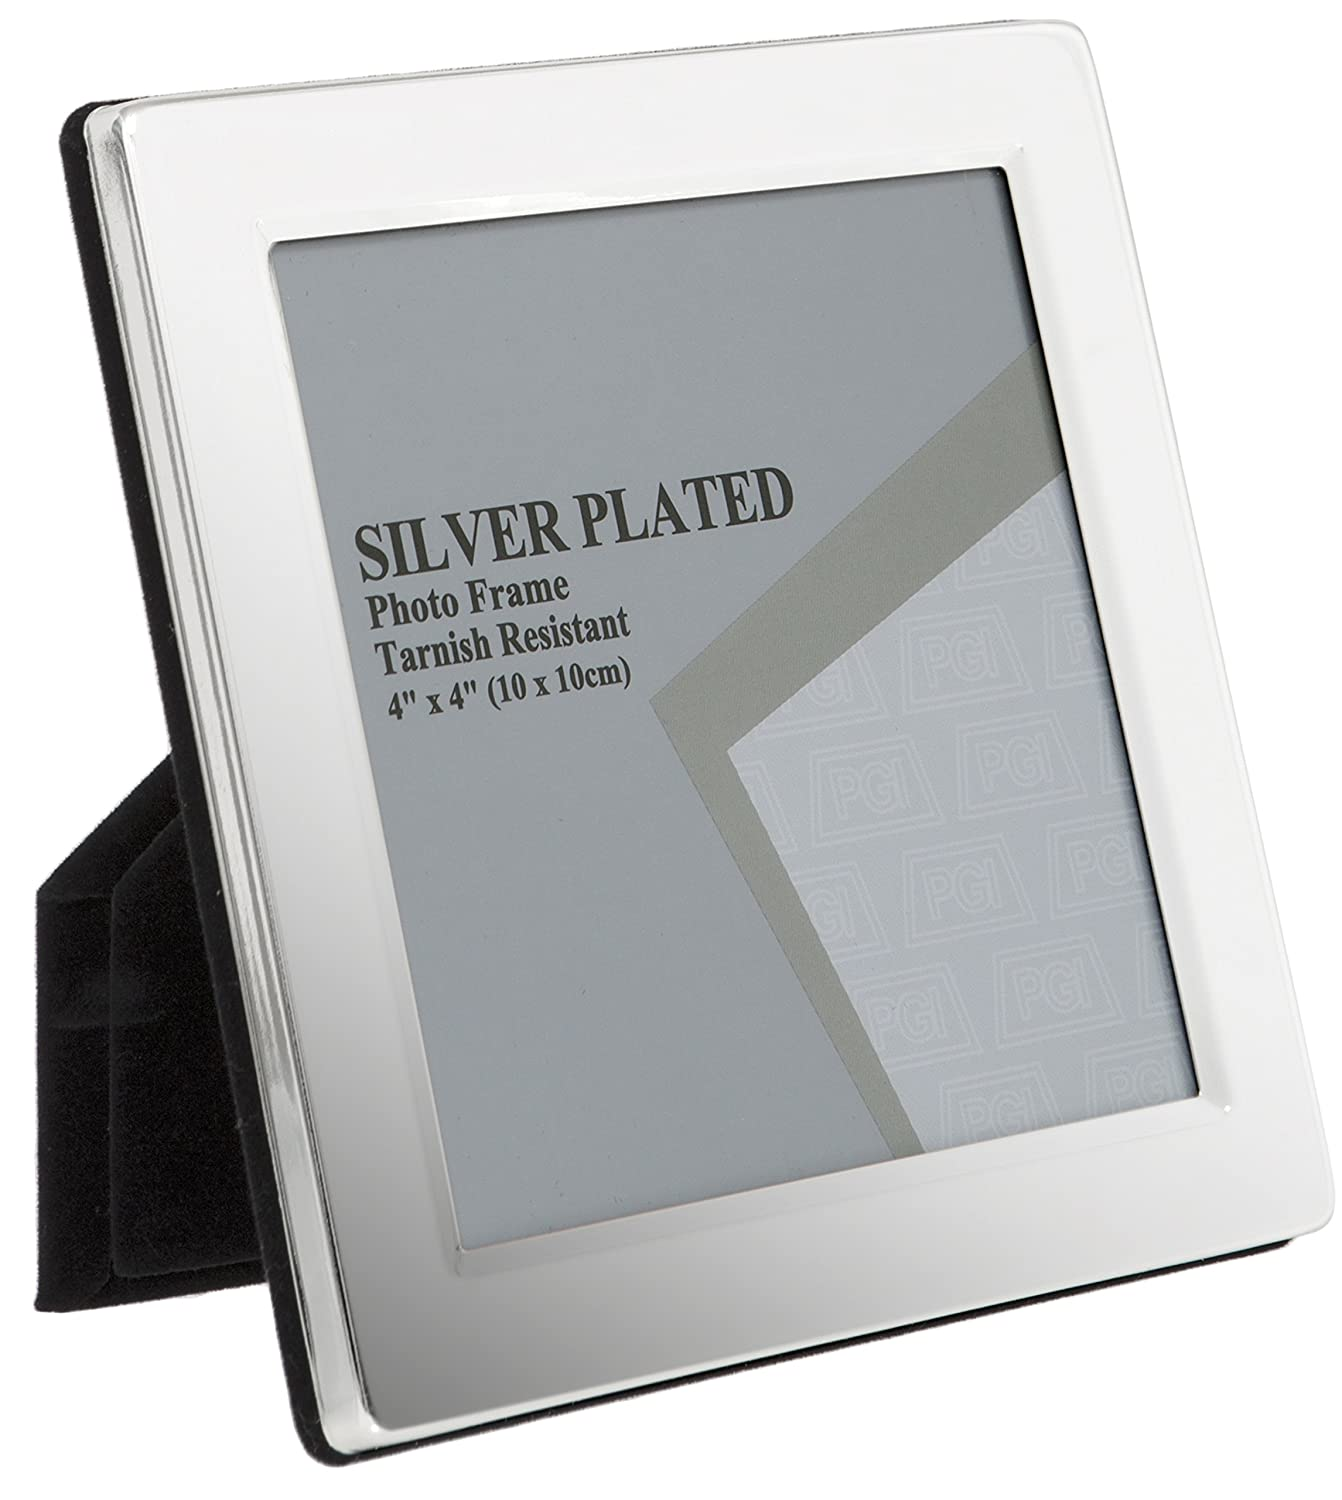 High Quality Unity 4 X 6 Inch Flat Edge Photo Frame, Silver Plated